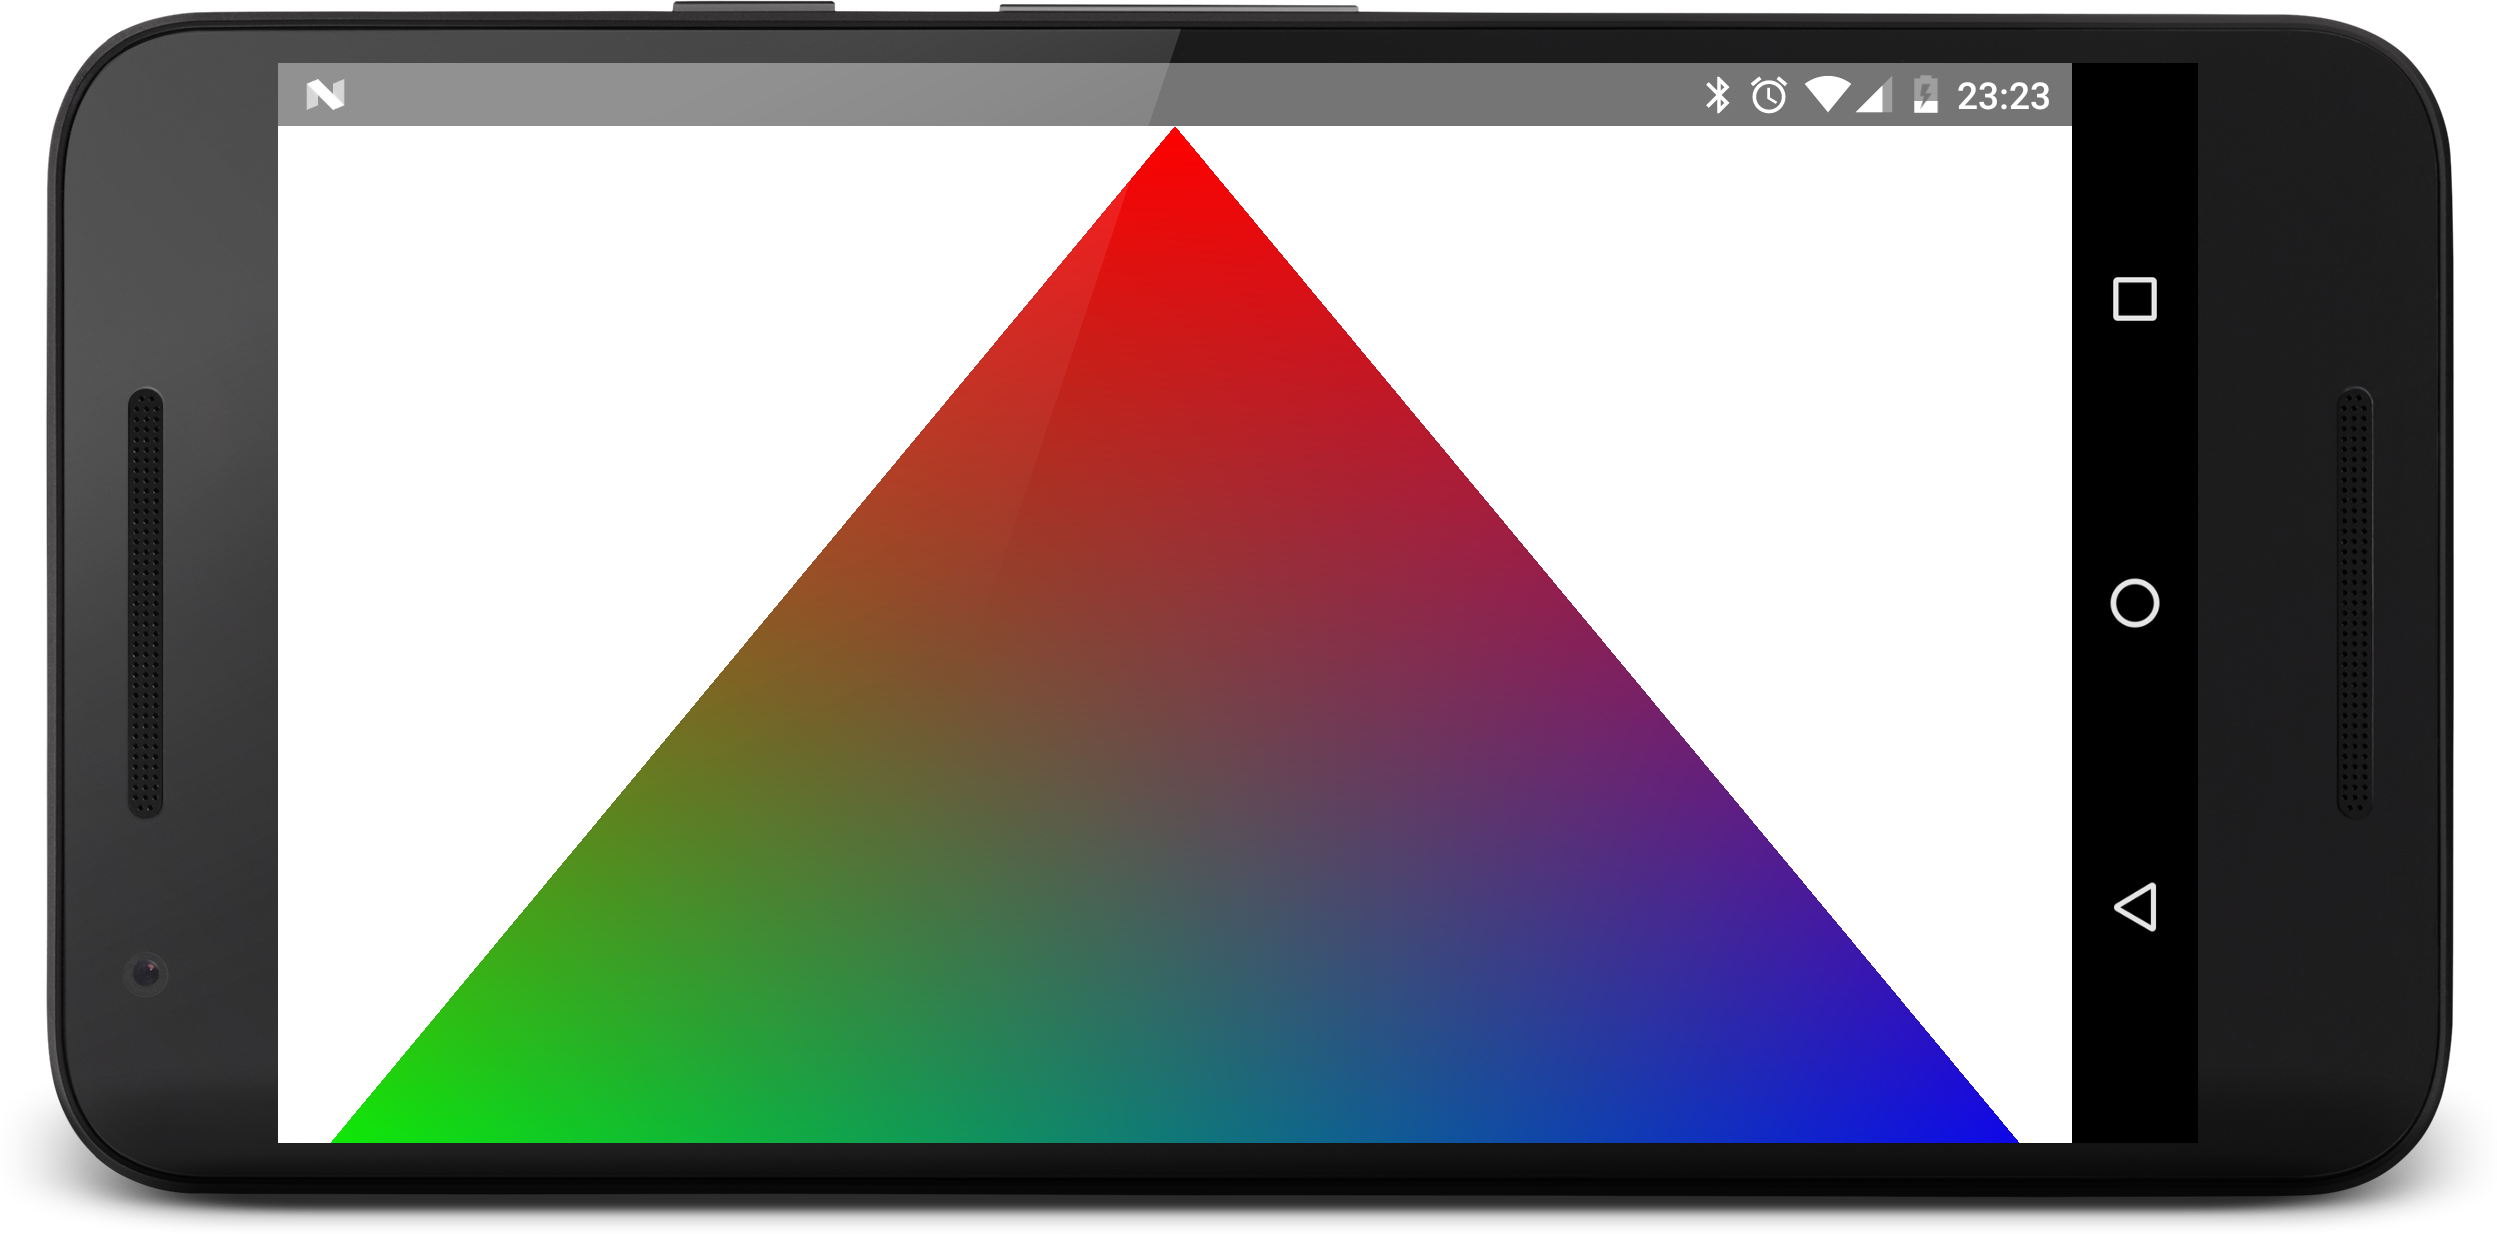 Animate it on React Native with OpenGL - ProAndroidDev